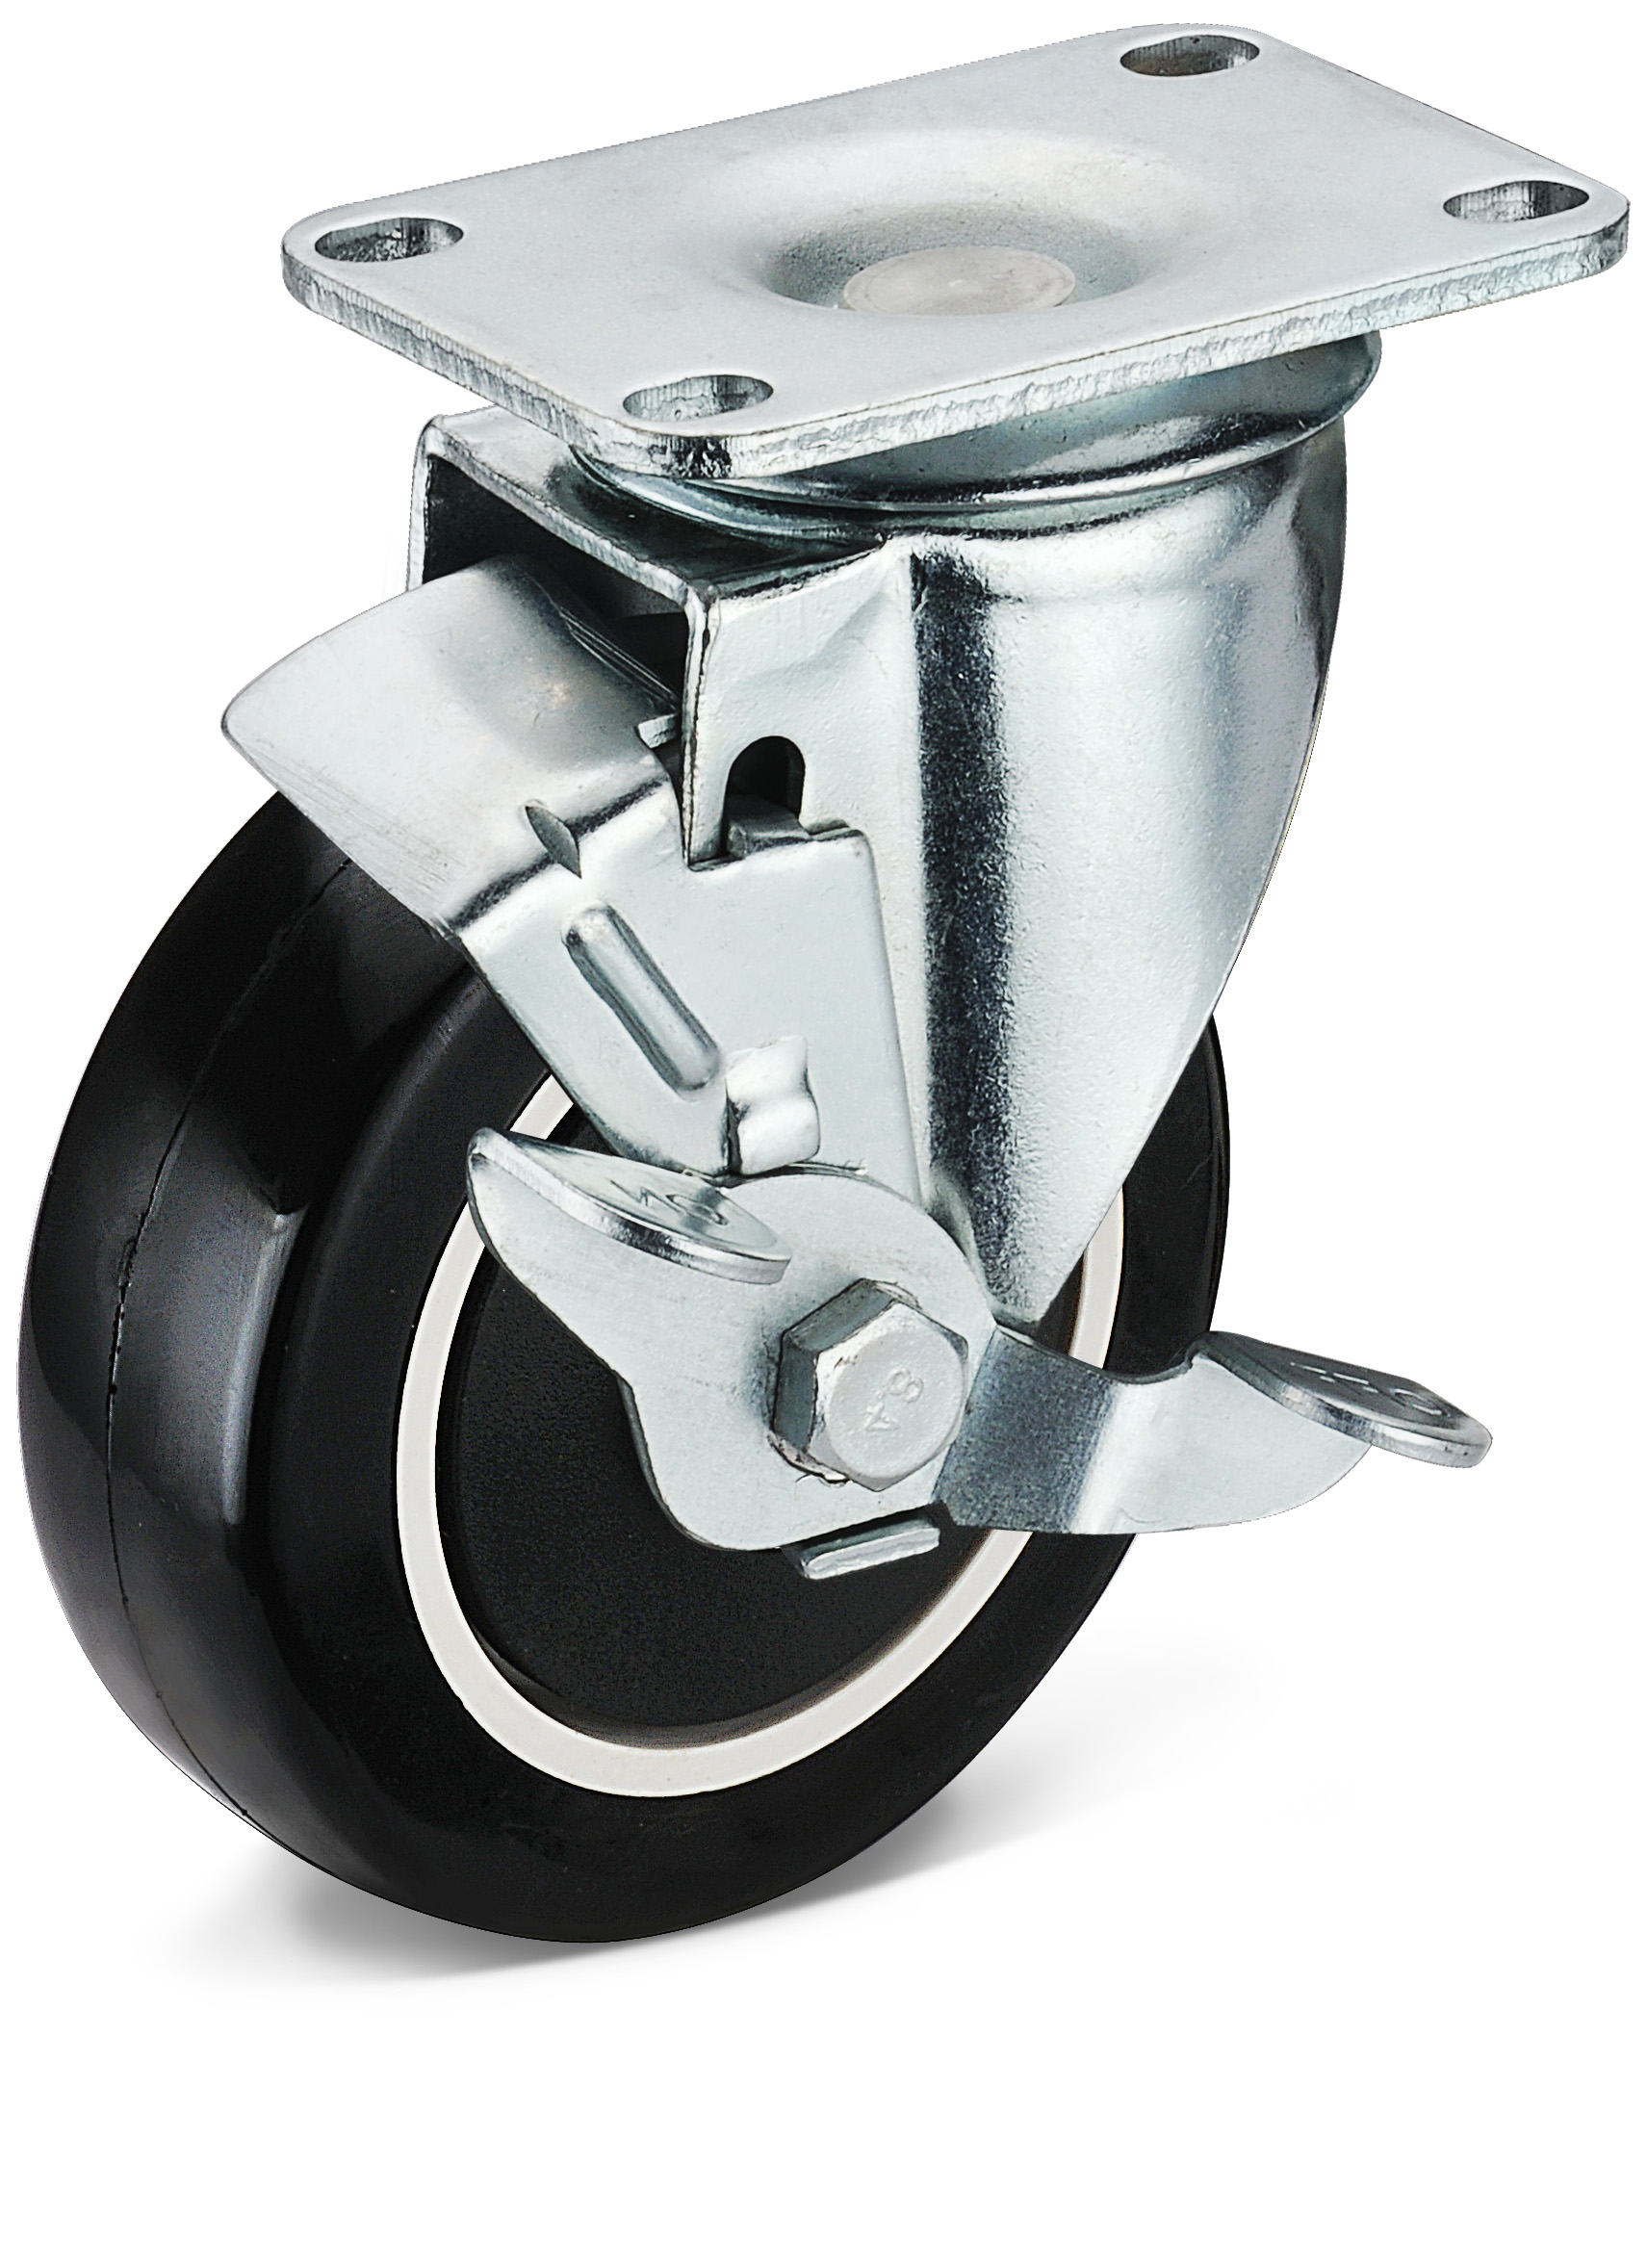 Furniture Casters with high elasticity